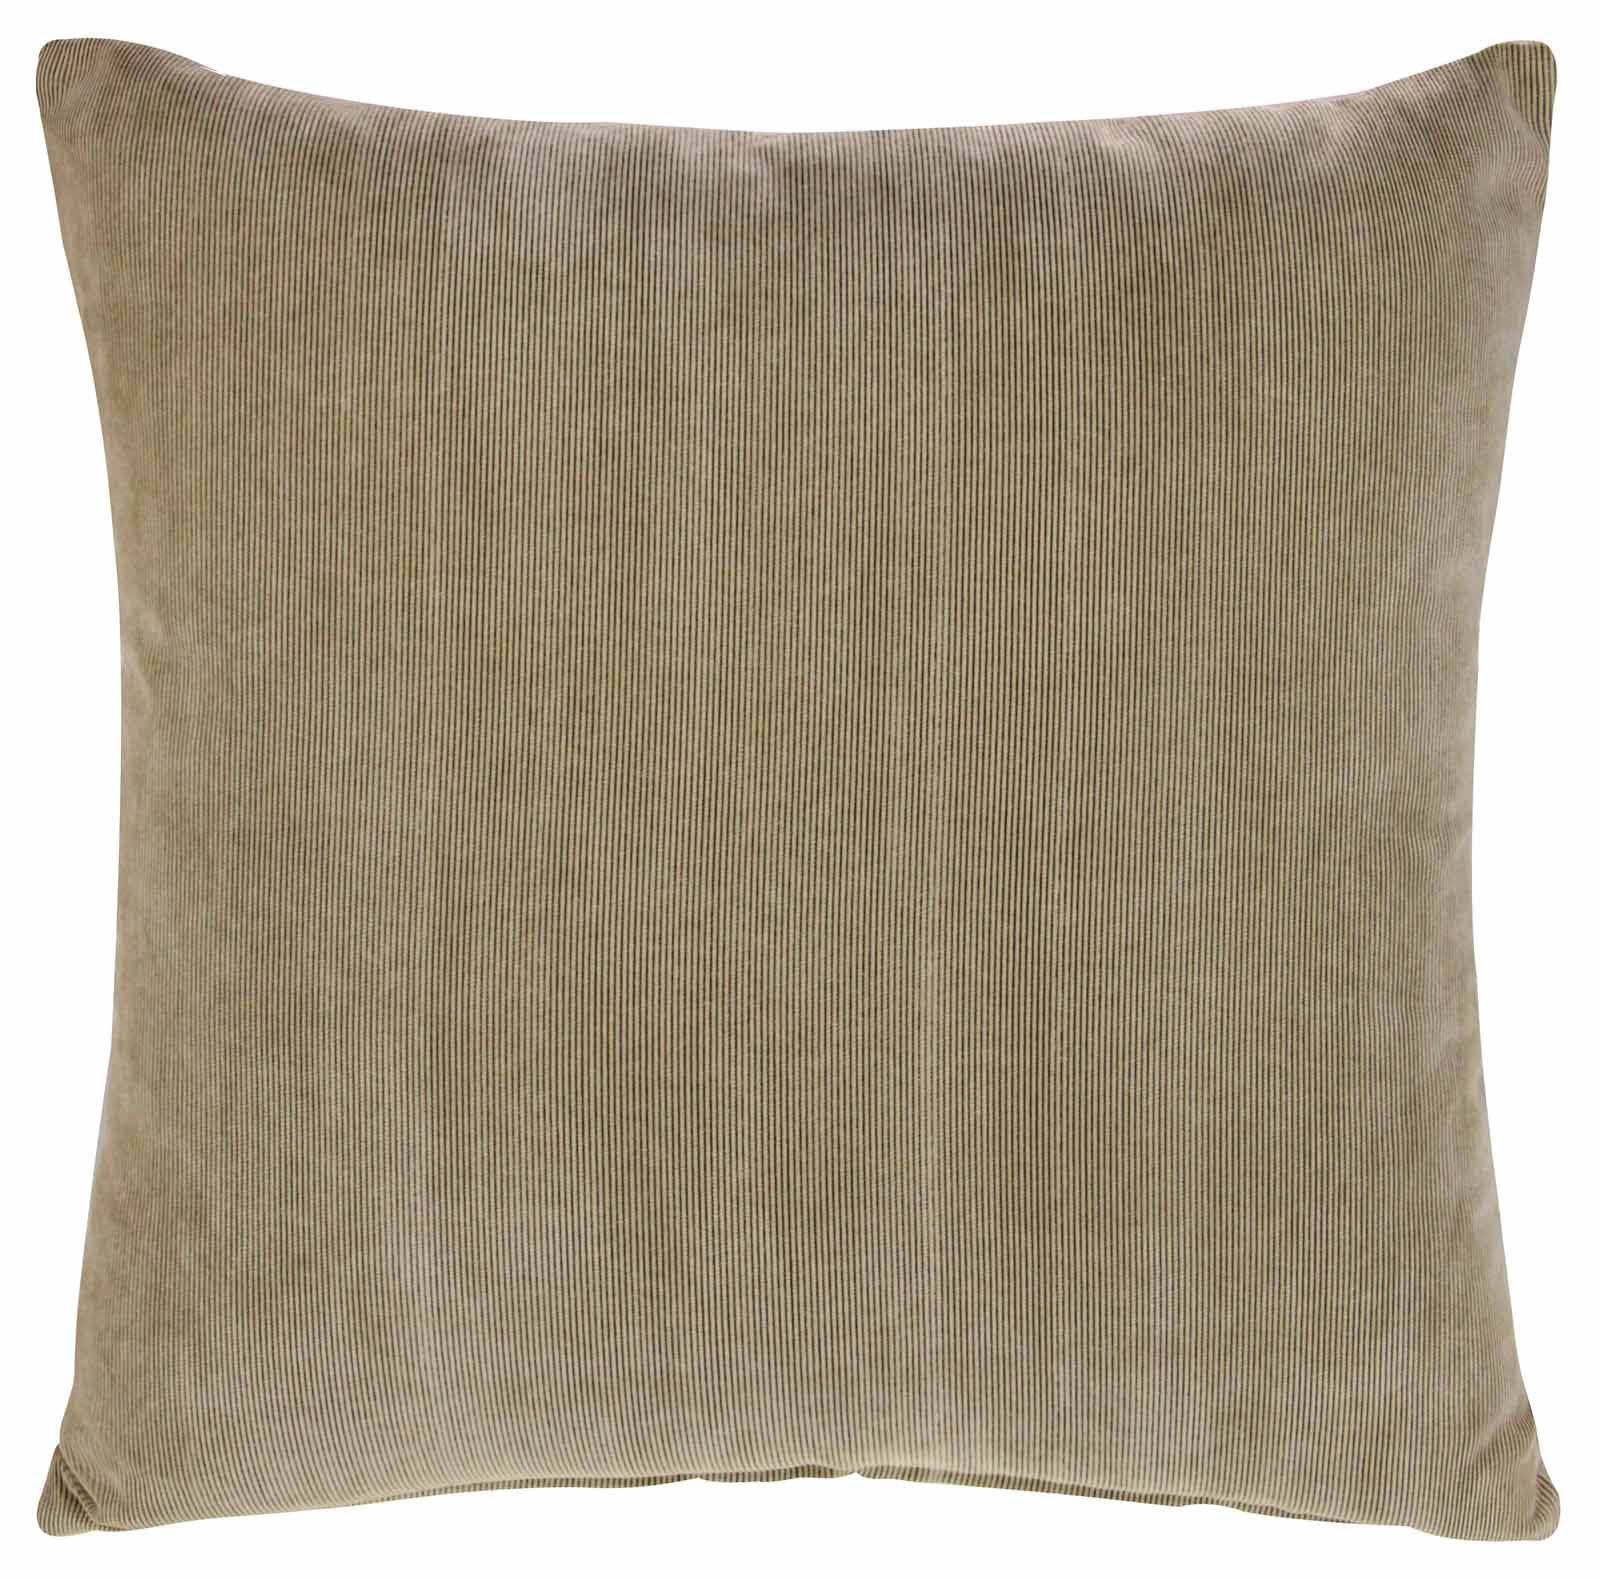 Soft Decorative Throw Pillows : LUXURY CORD CUSHION COVER 18